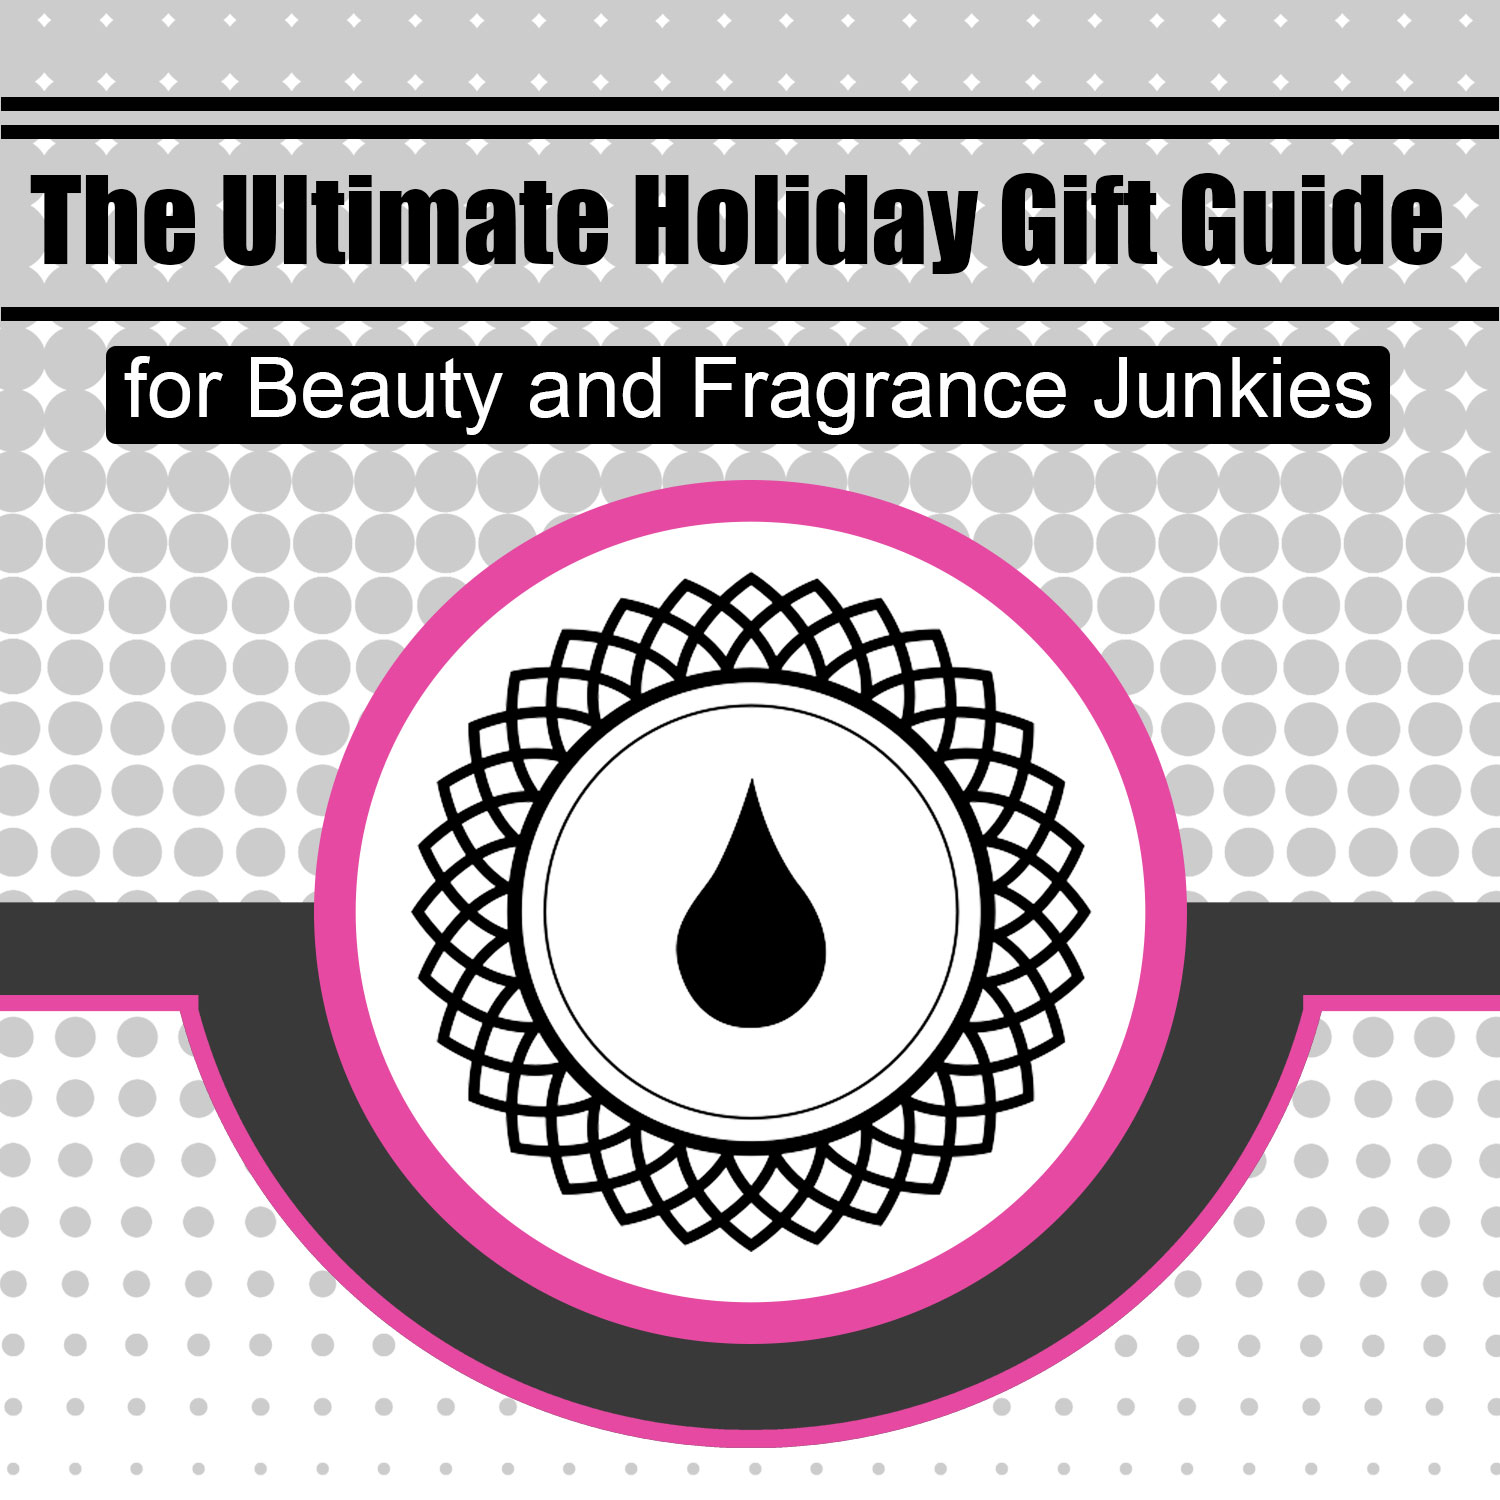 The Ultimate Holiday Gift Guide for Beauty and Fragrance Junkies